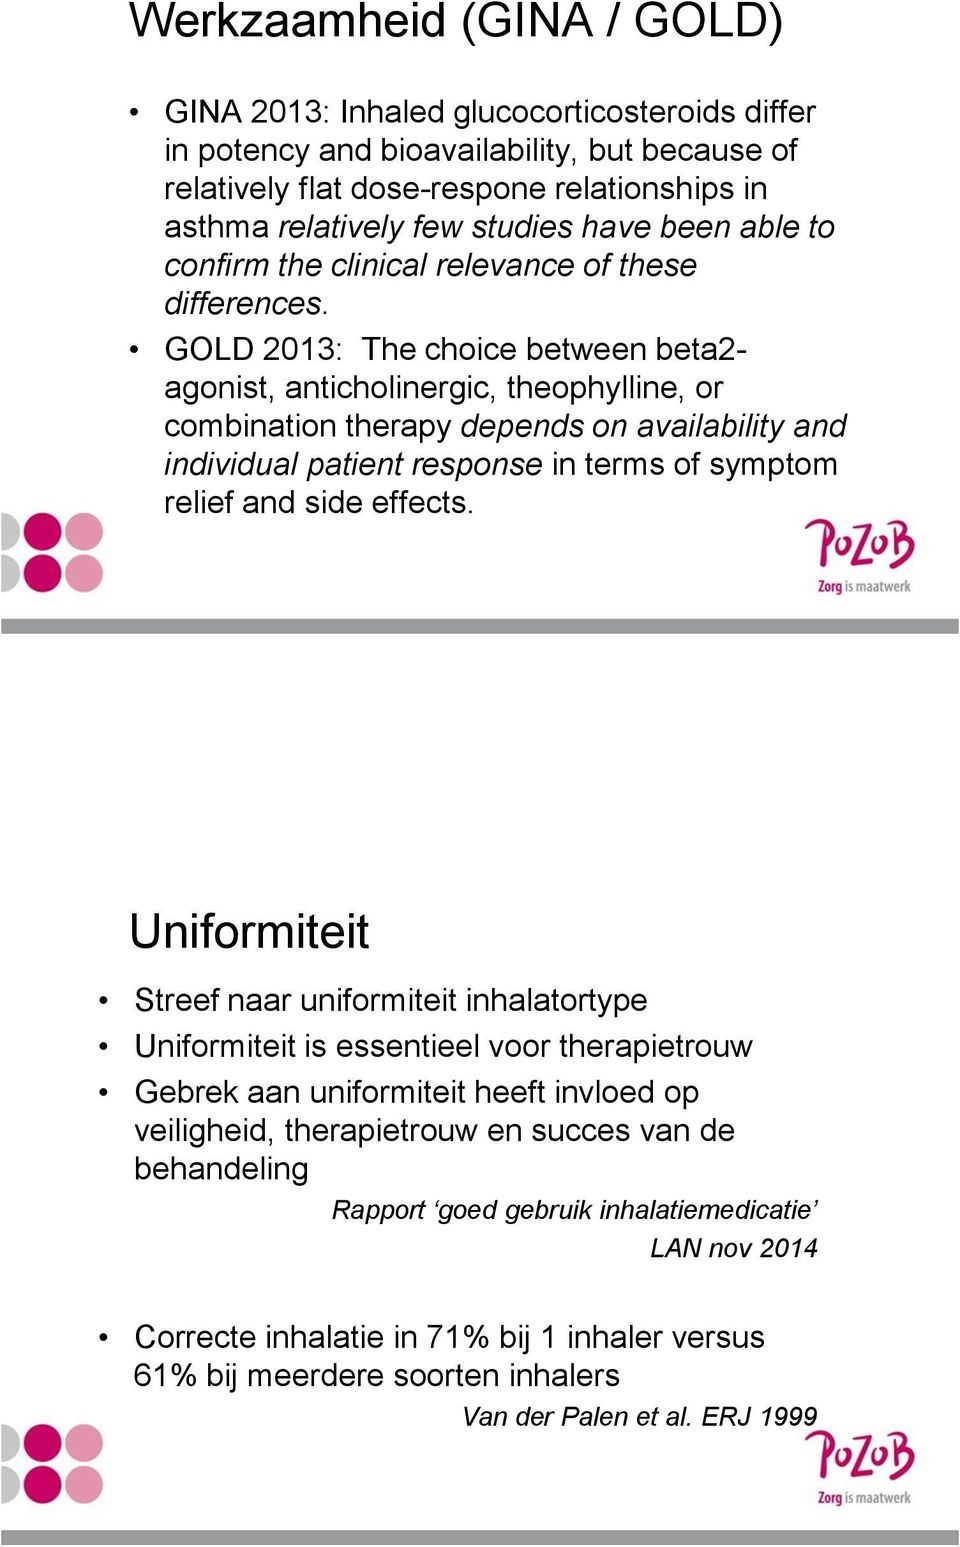 GOLD 2013: The choice between beta2- agonist, anticholinergic, theophylline, or combination therapy depends on availability and individual patient response in terms of symptom relief and side effects.